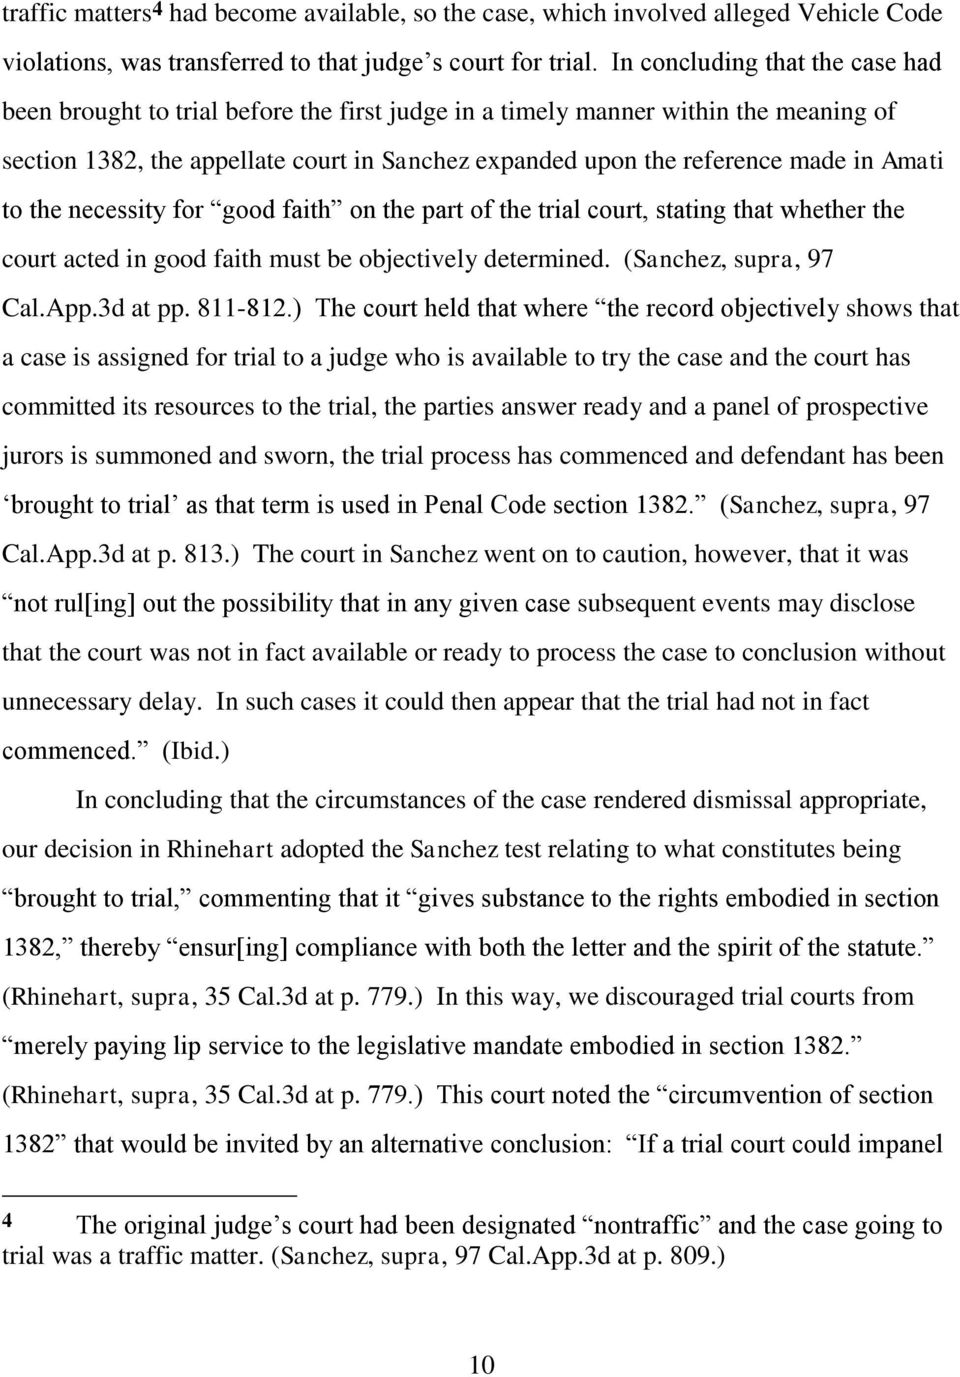 Amati to the necessity for good faith on the part of the trial court, stating that whether the court acted in good faith must be objectively determined. (Sanchez, supra, 97 Cal.App.3d at pp. 811-812.